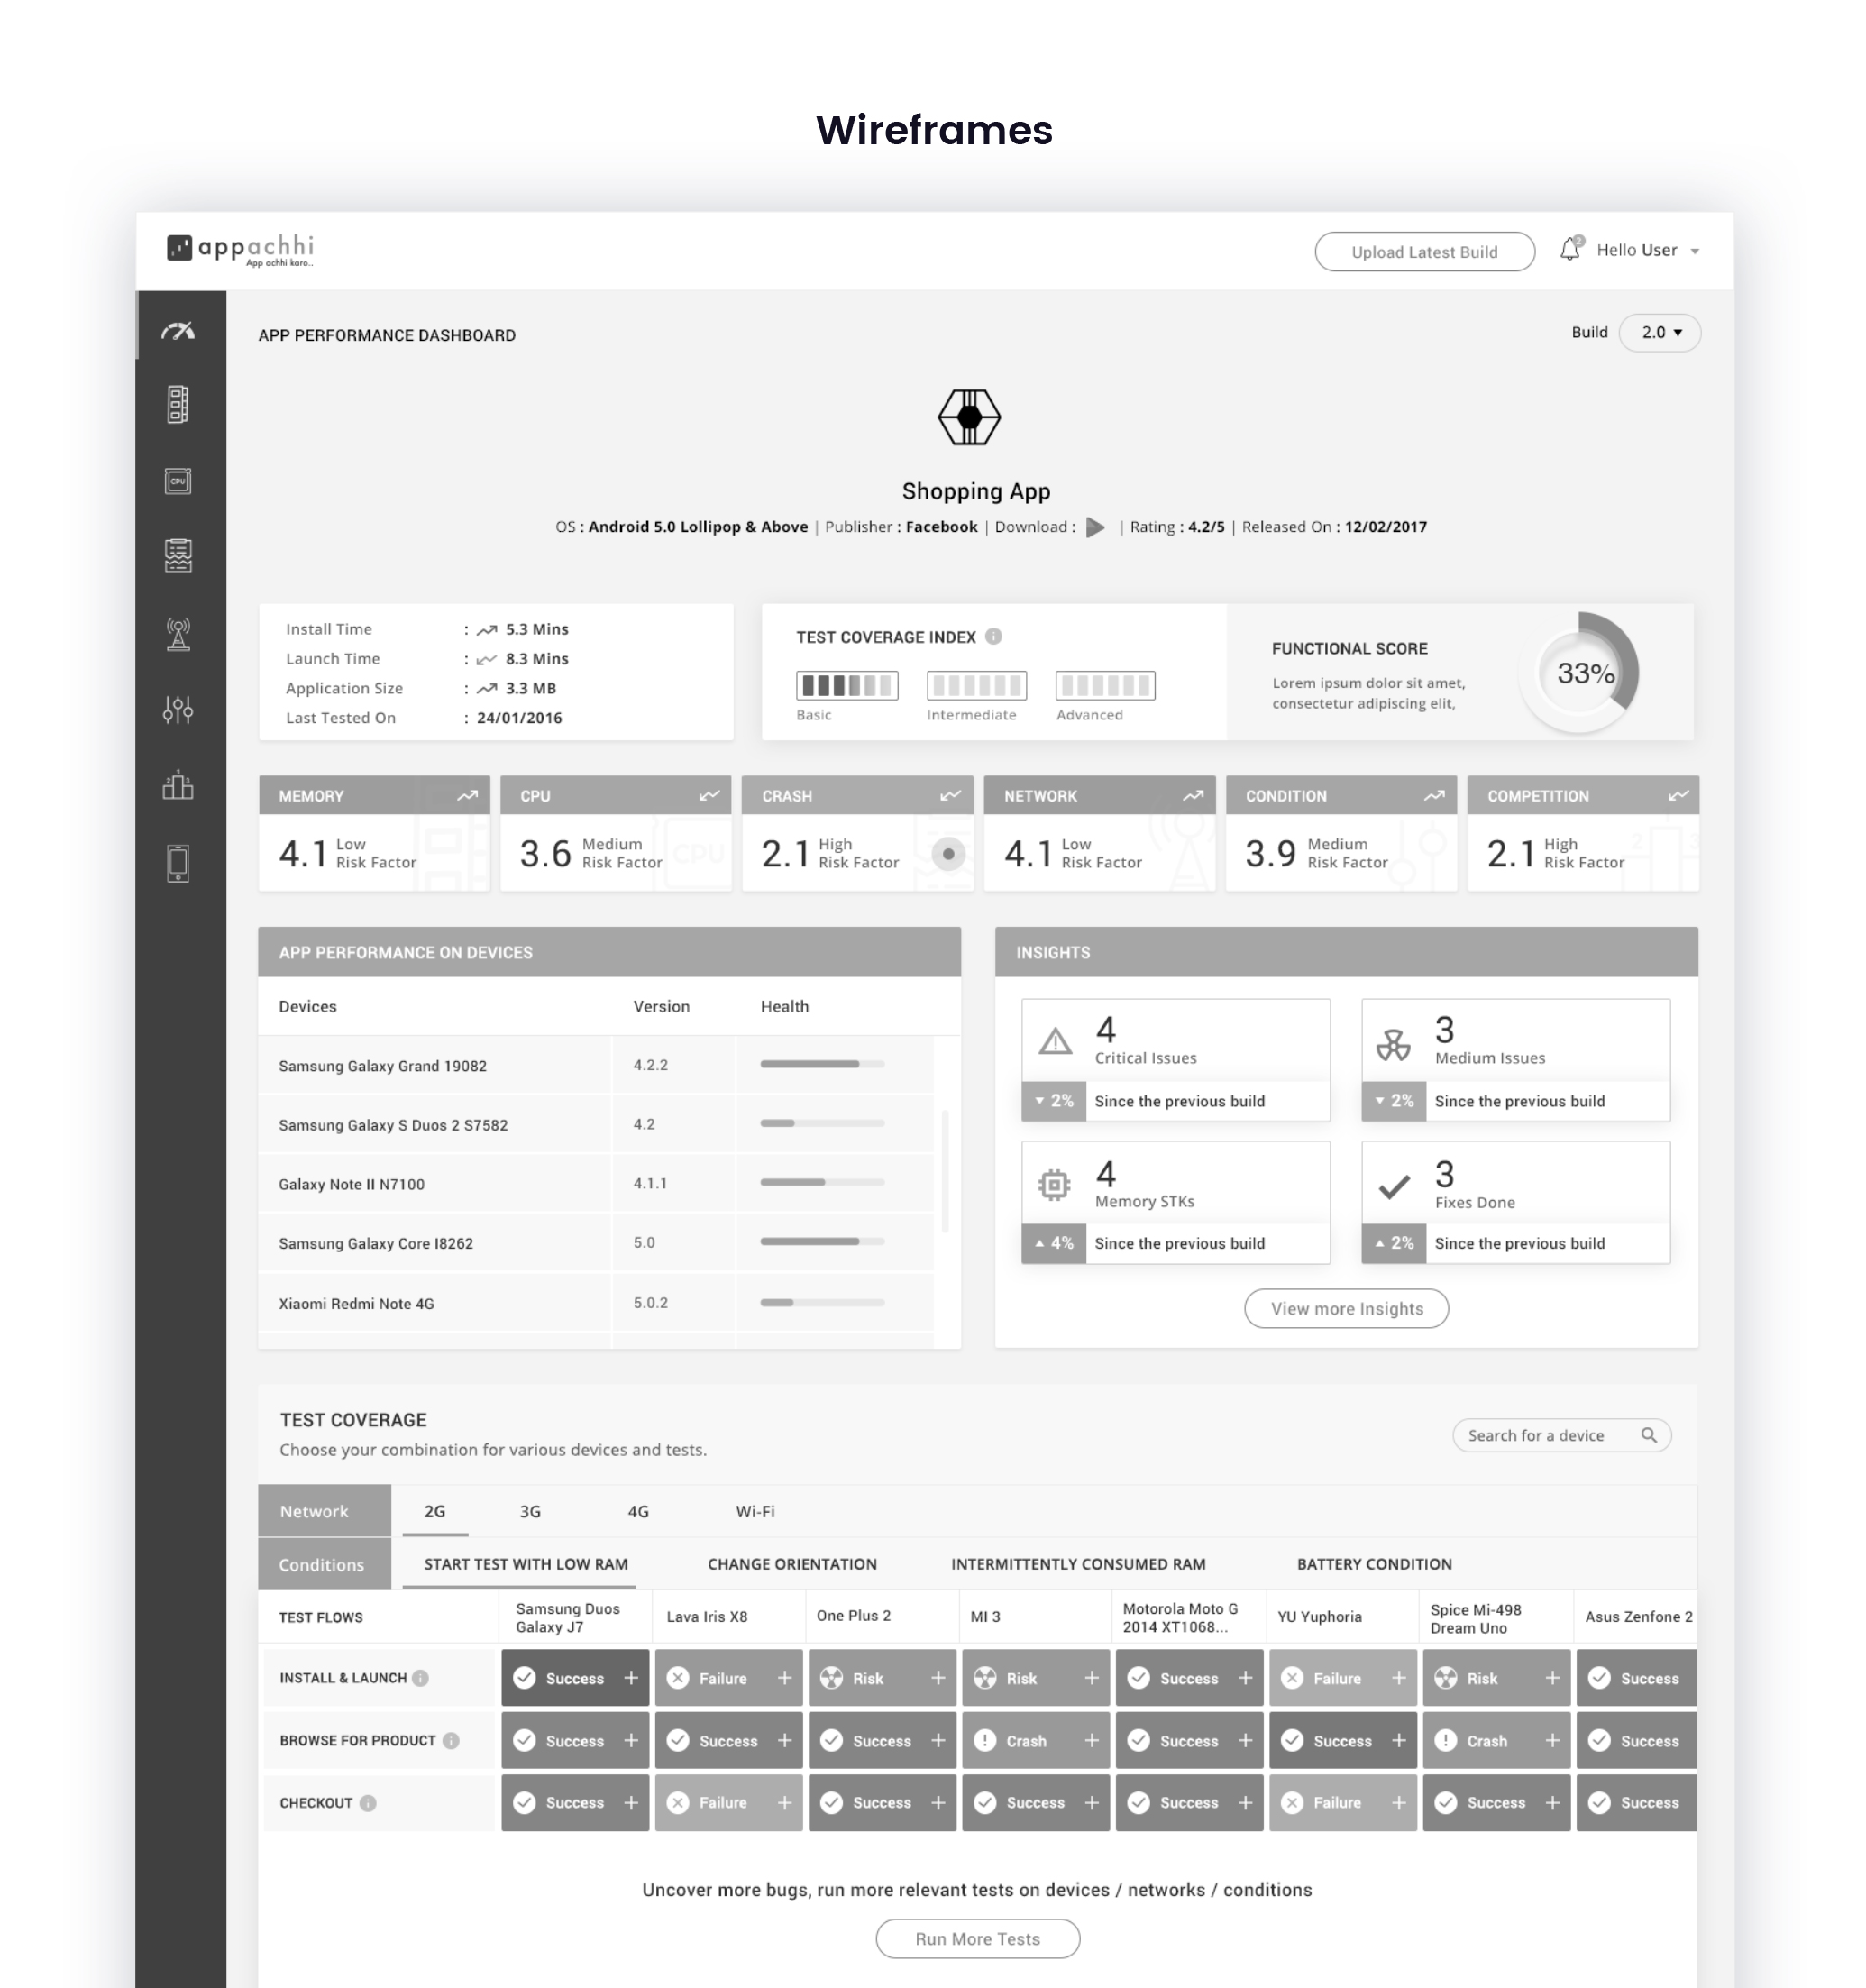 Appachi Automation Testing Wireframes